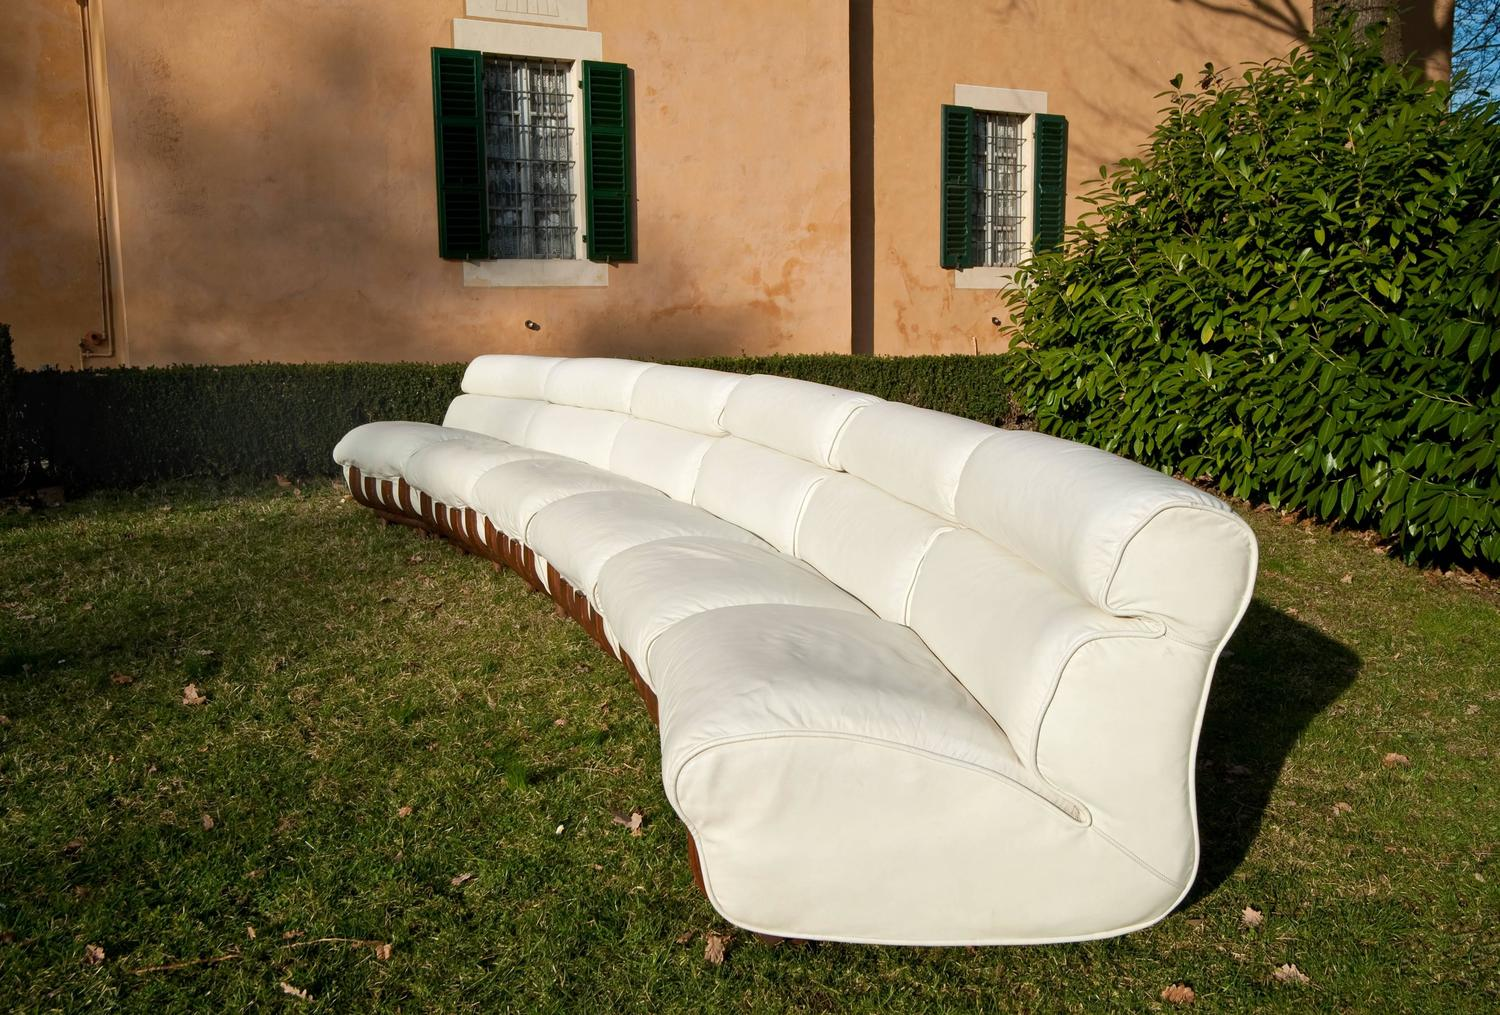 luciano frigerio white leather sectional sofa and ottomans for sale at 1stdibs. Black Bedroom Furniture Sets. Home Design Ideas